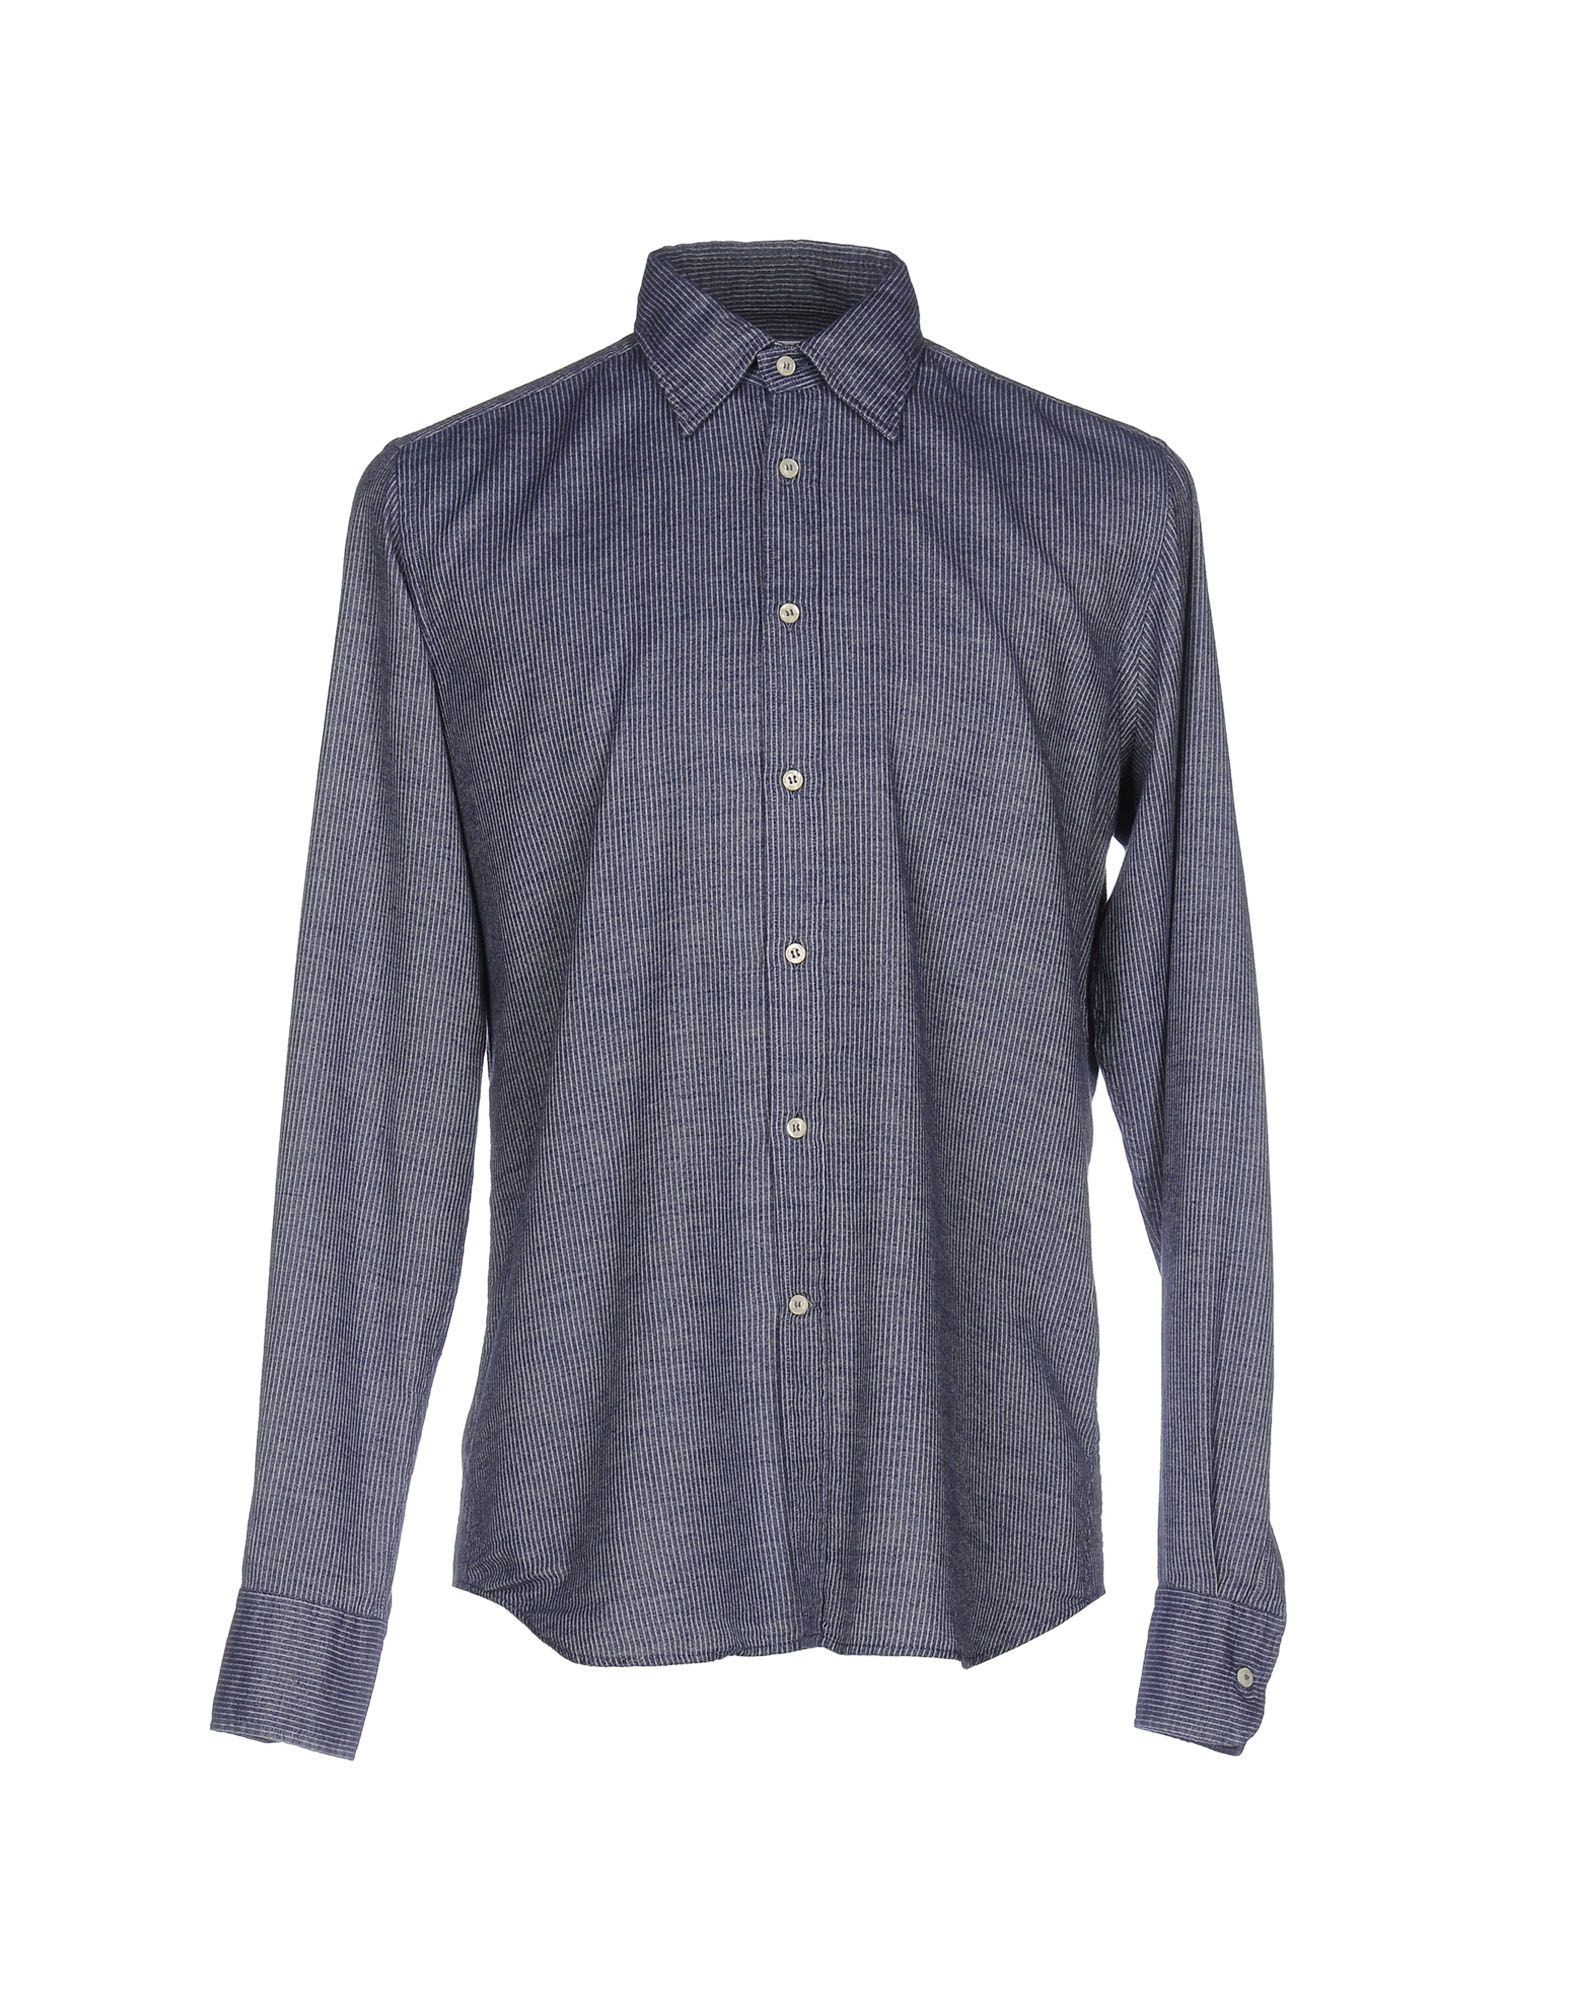 BEVILACQUA Striped Shirt in Blue